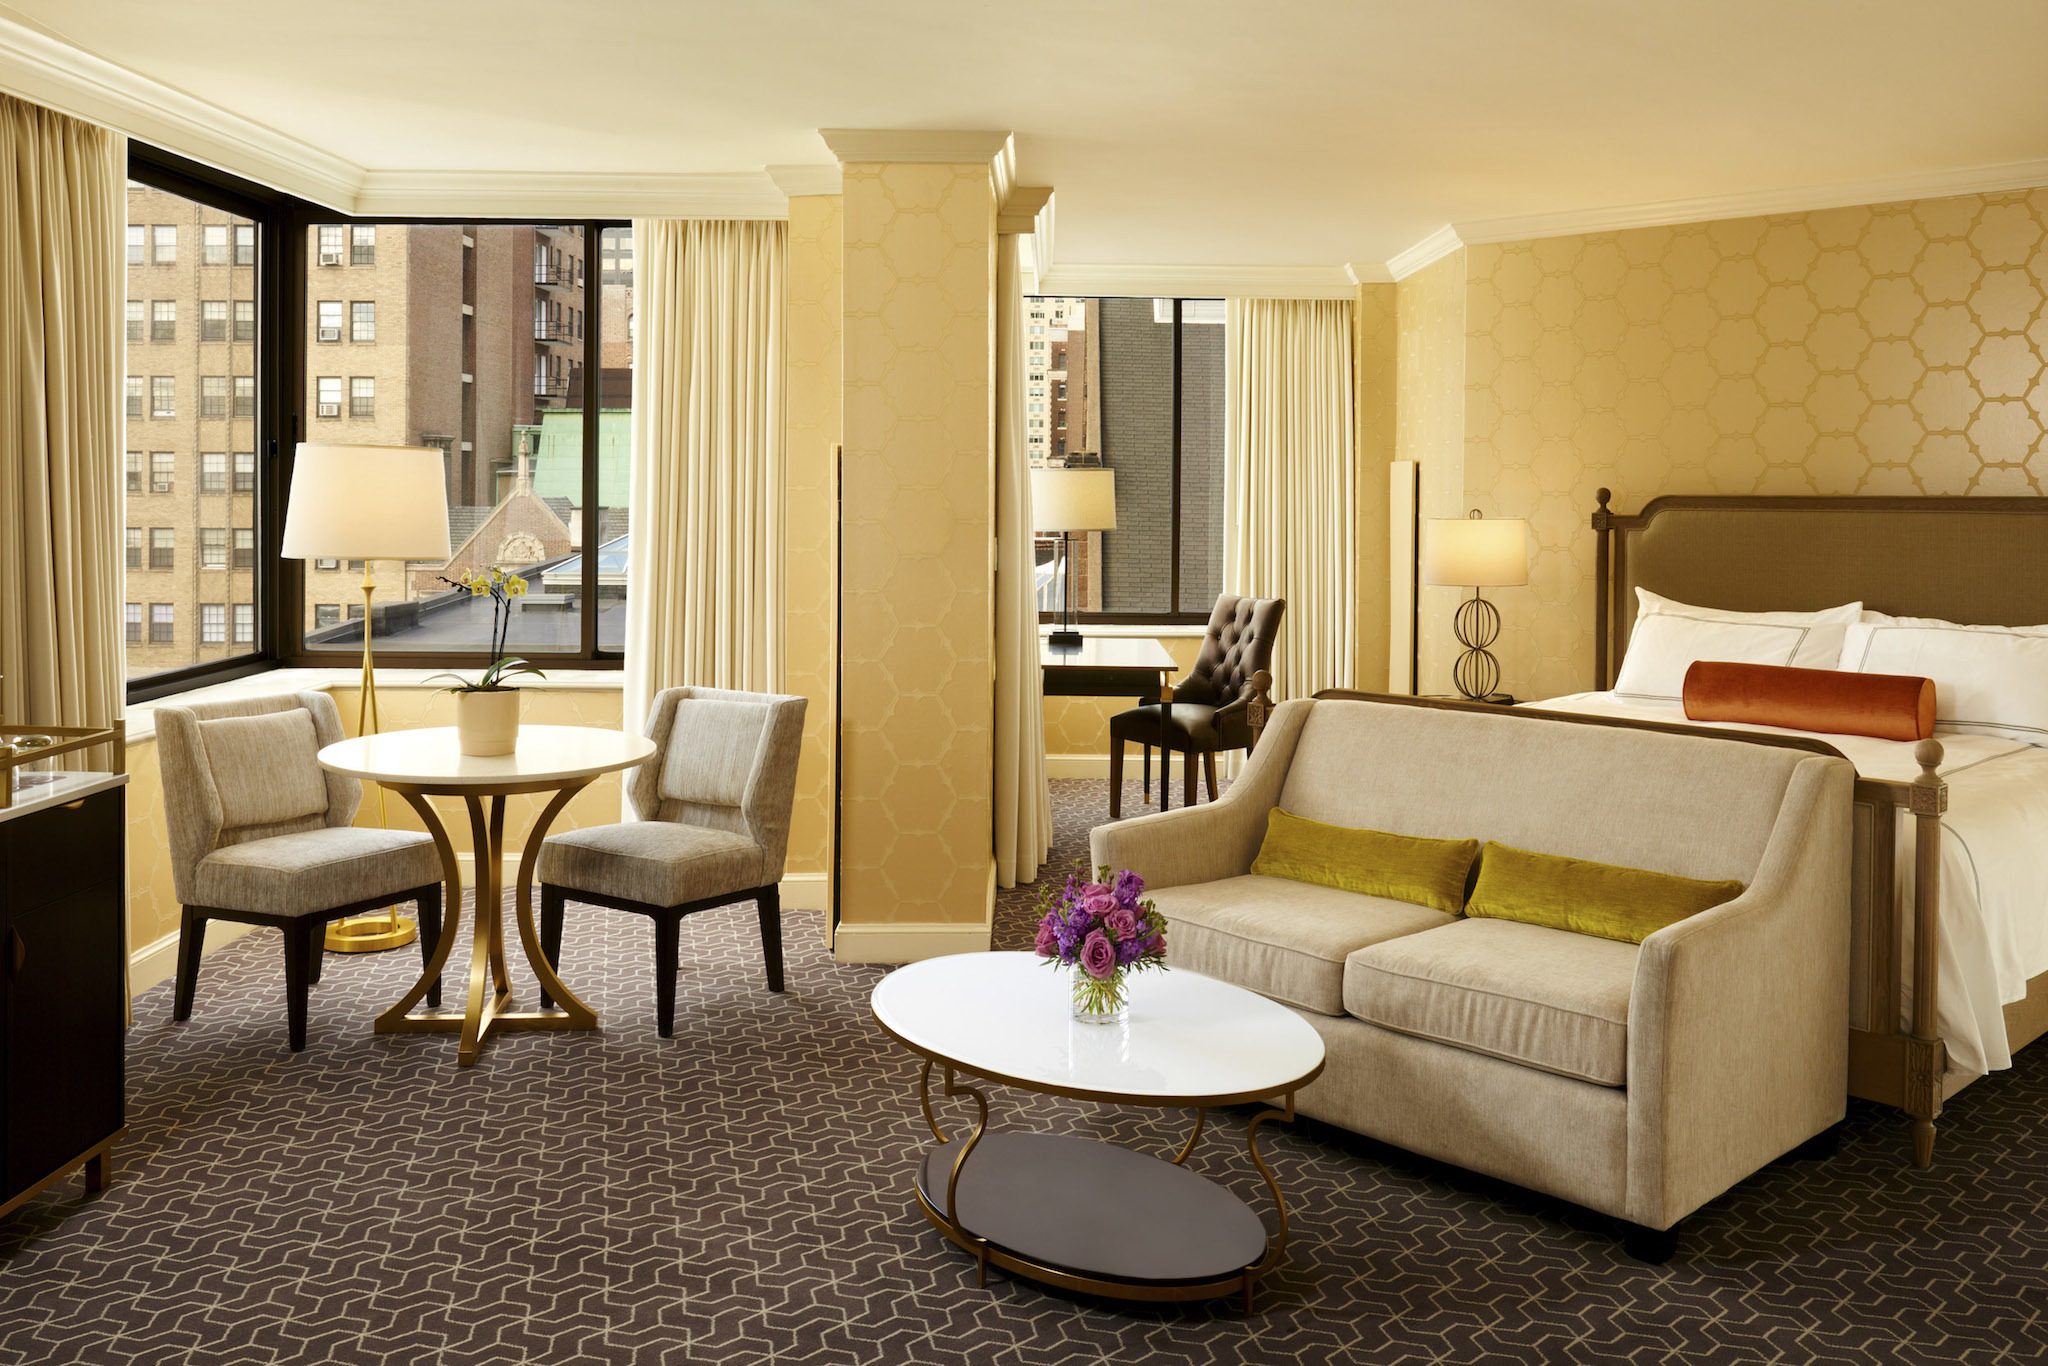 The Rittenhouse Hotel is a luxury hotel located in Rittenhouse Square.